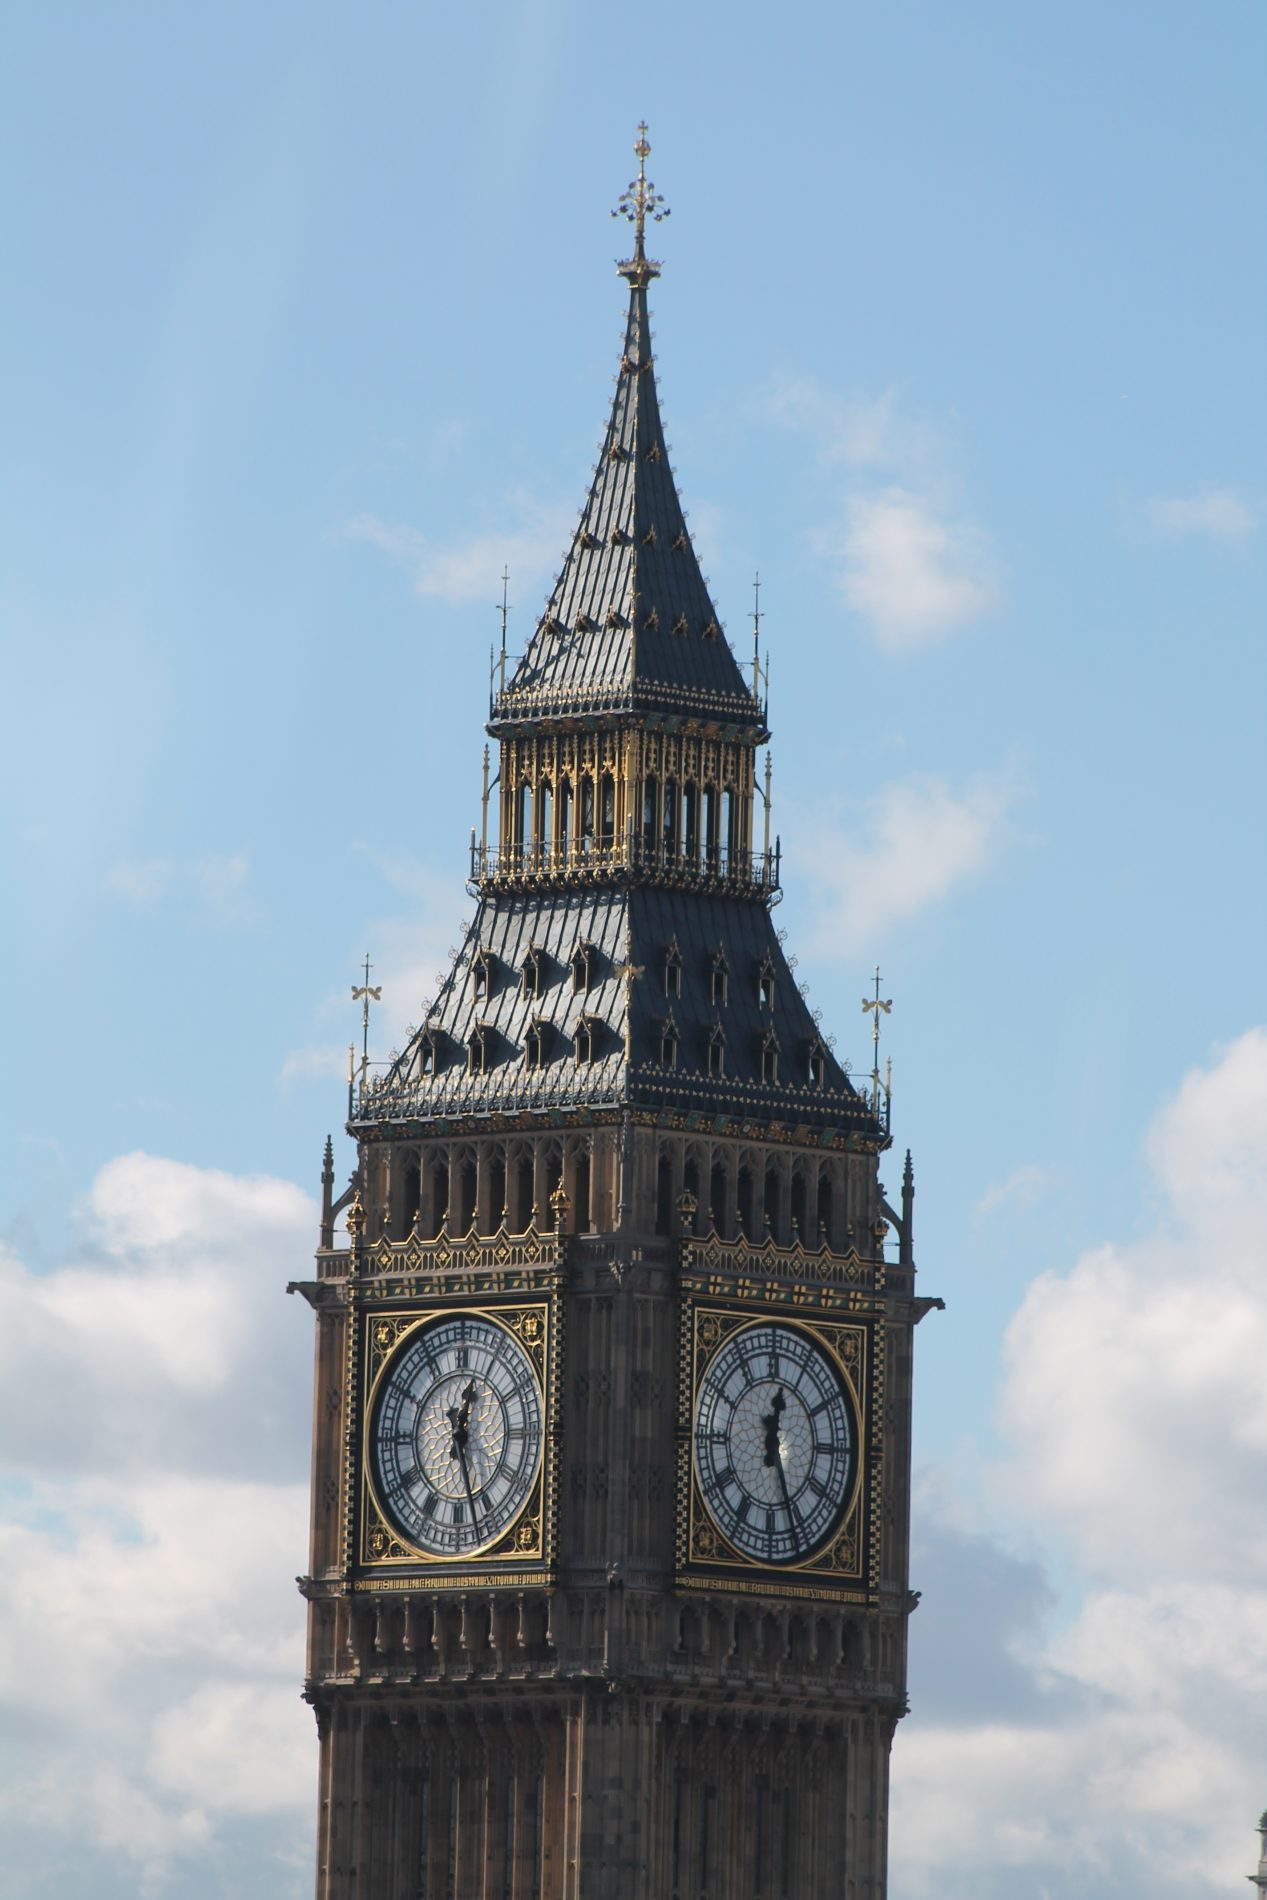 YOUNG BRITONS VOTE BIG BEN AS THEIR TOP BRITISH LANDMARK